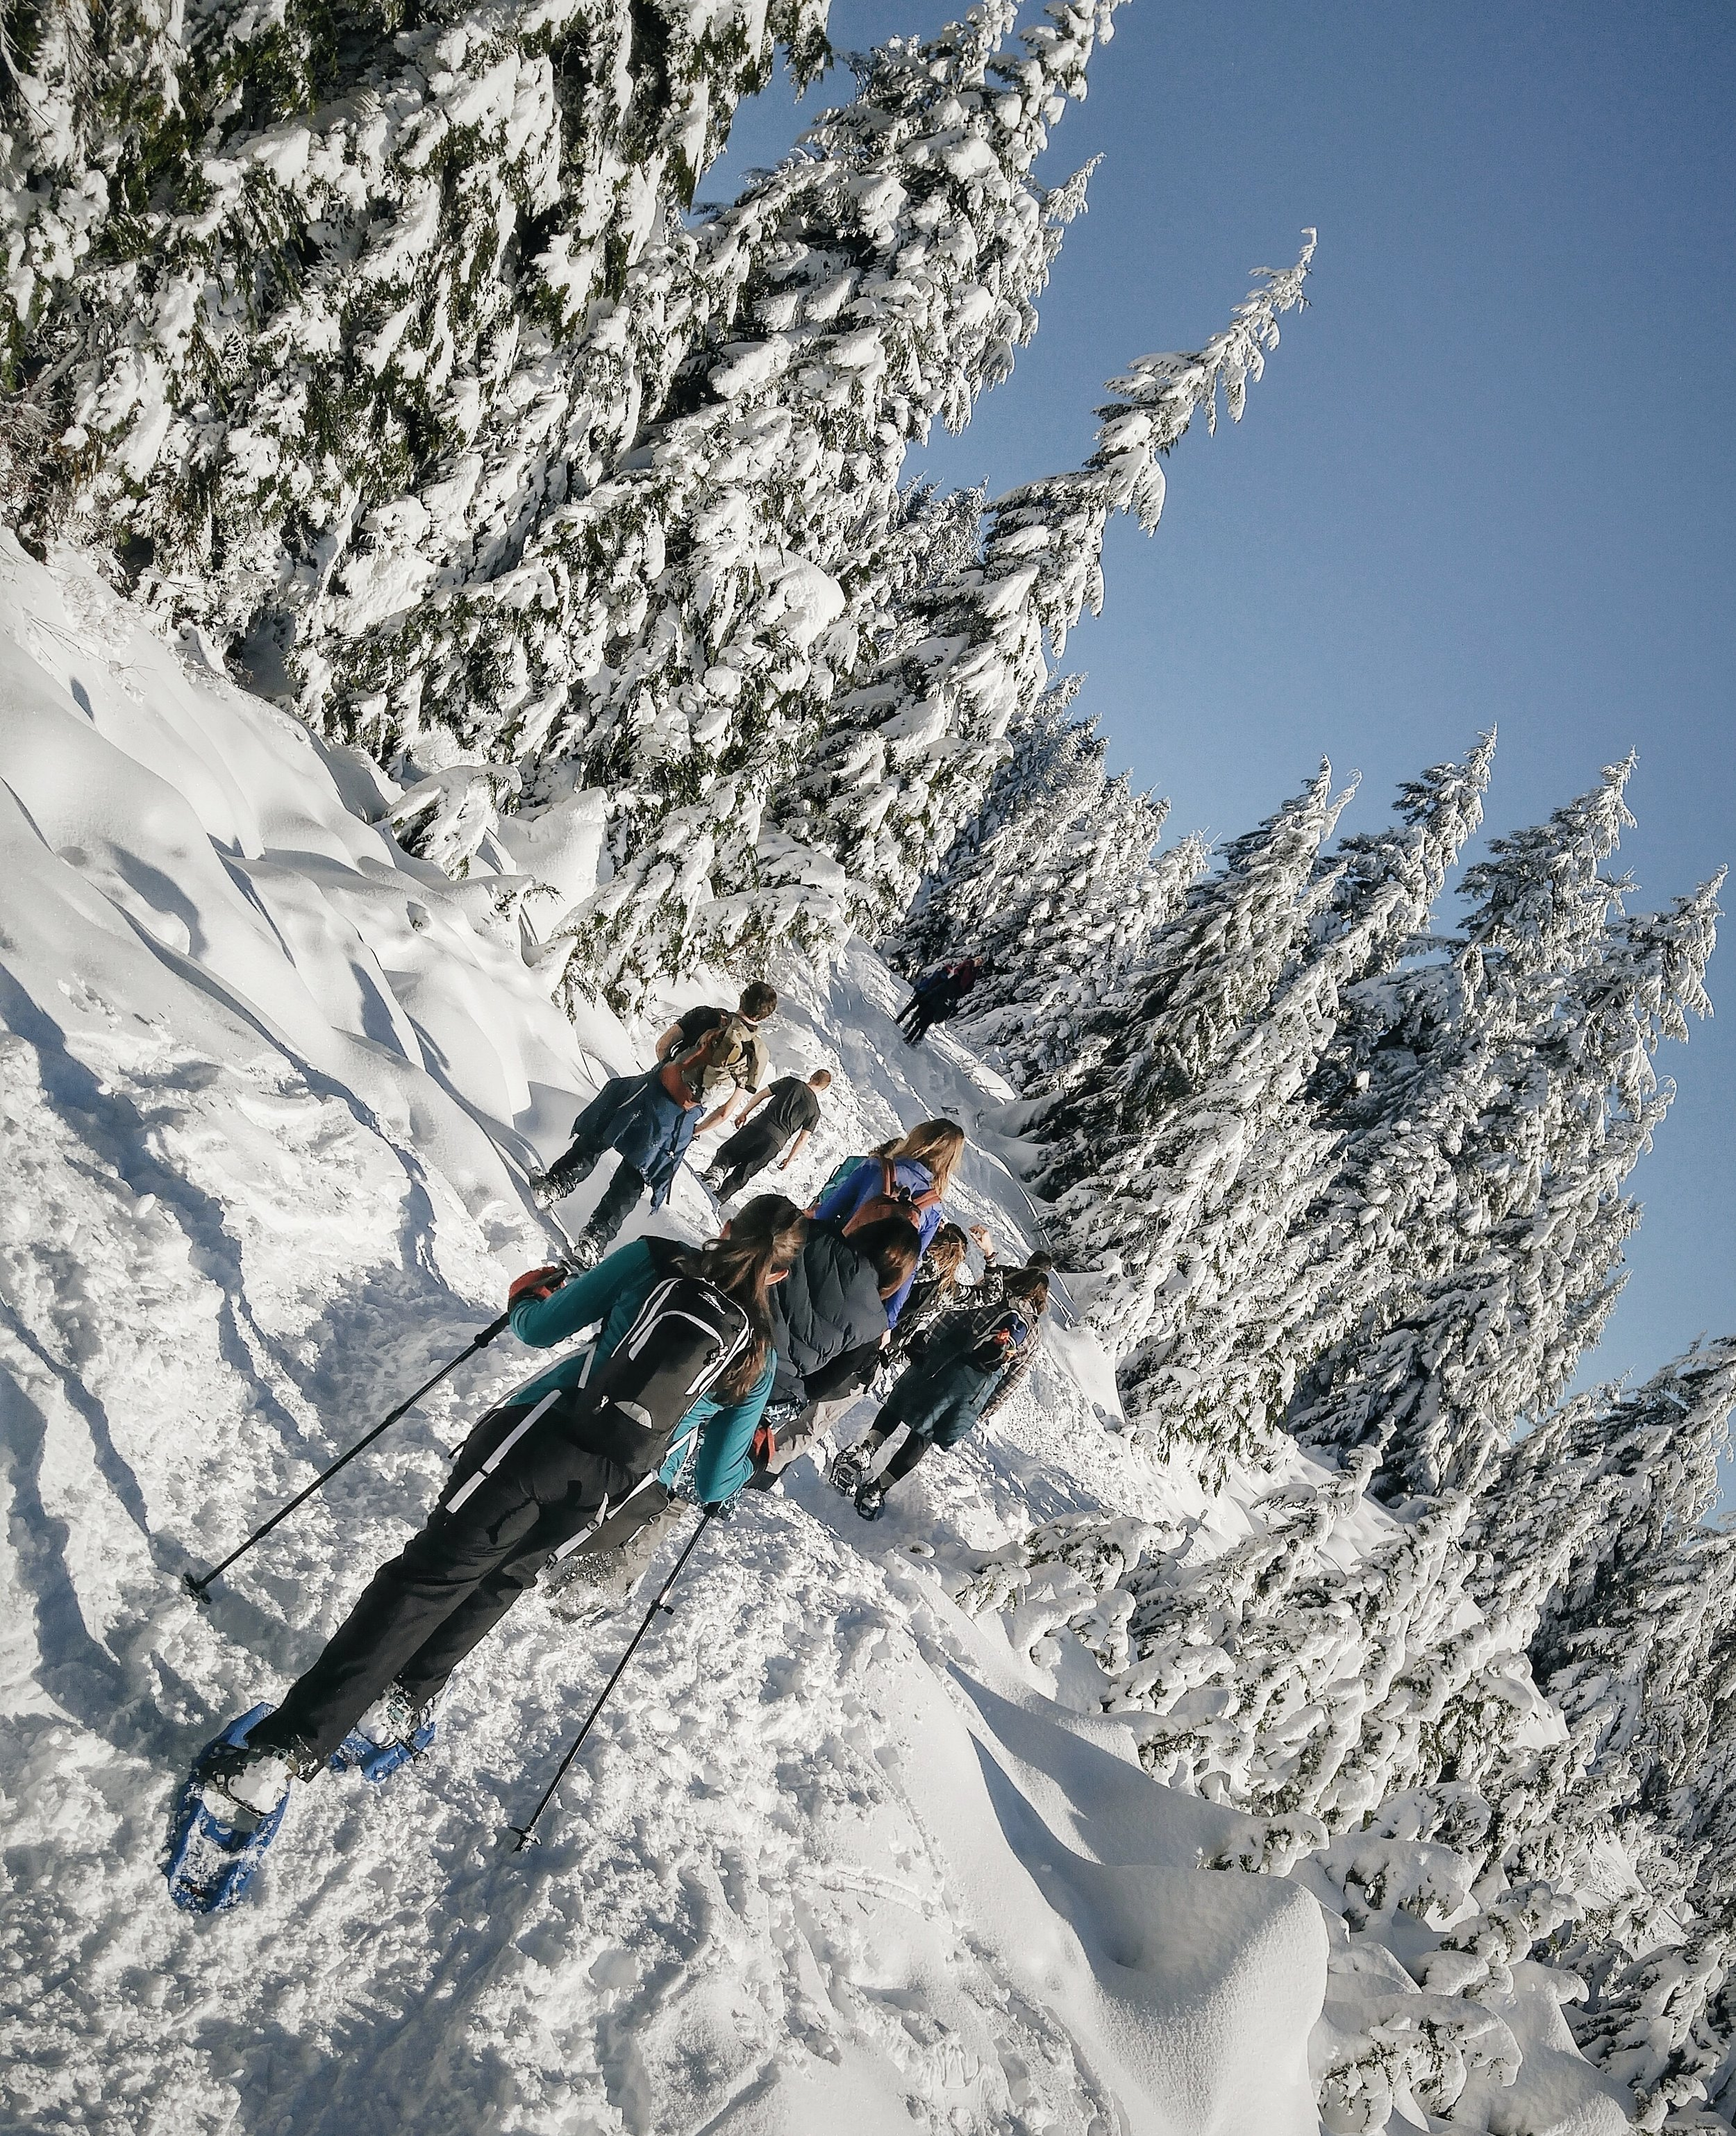 In no time at all, winter was upon us, and mainland British Columbia got the brunt of it. Our Outdoor Club chose to make the most of the weather, and planned a number of snowshoeing escapades.